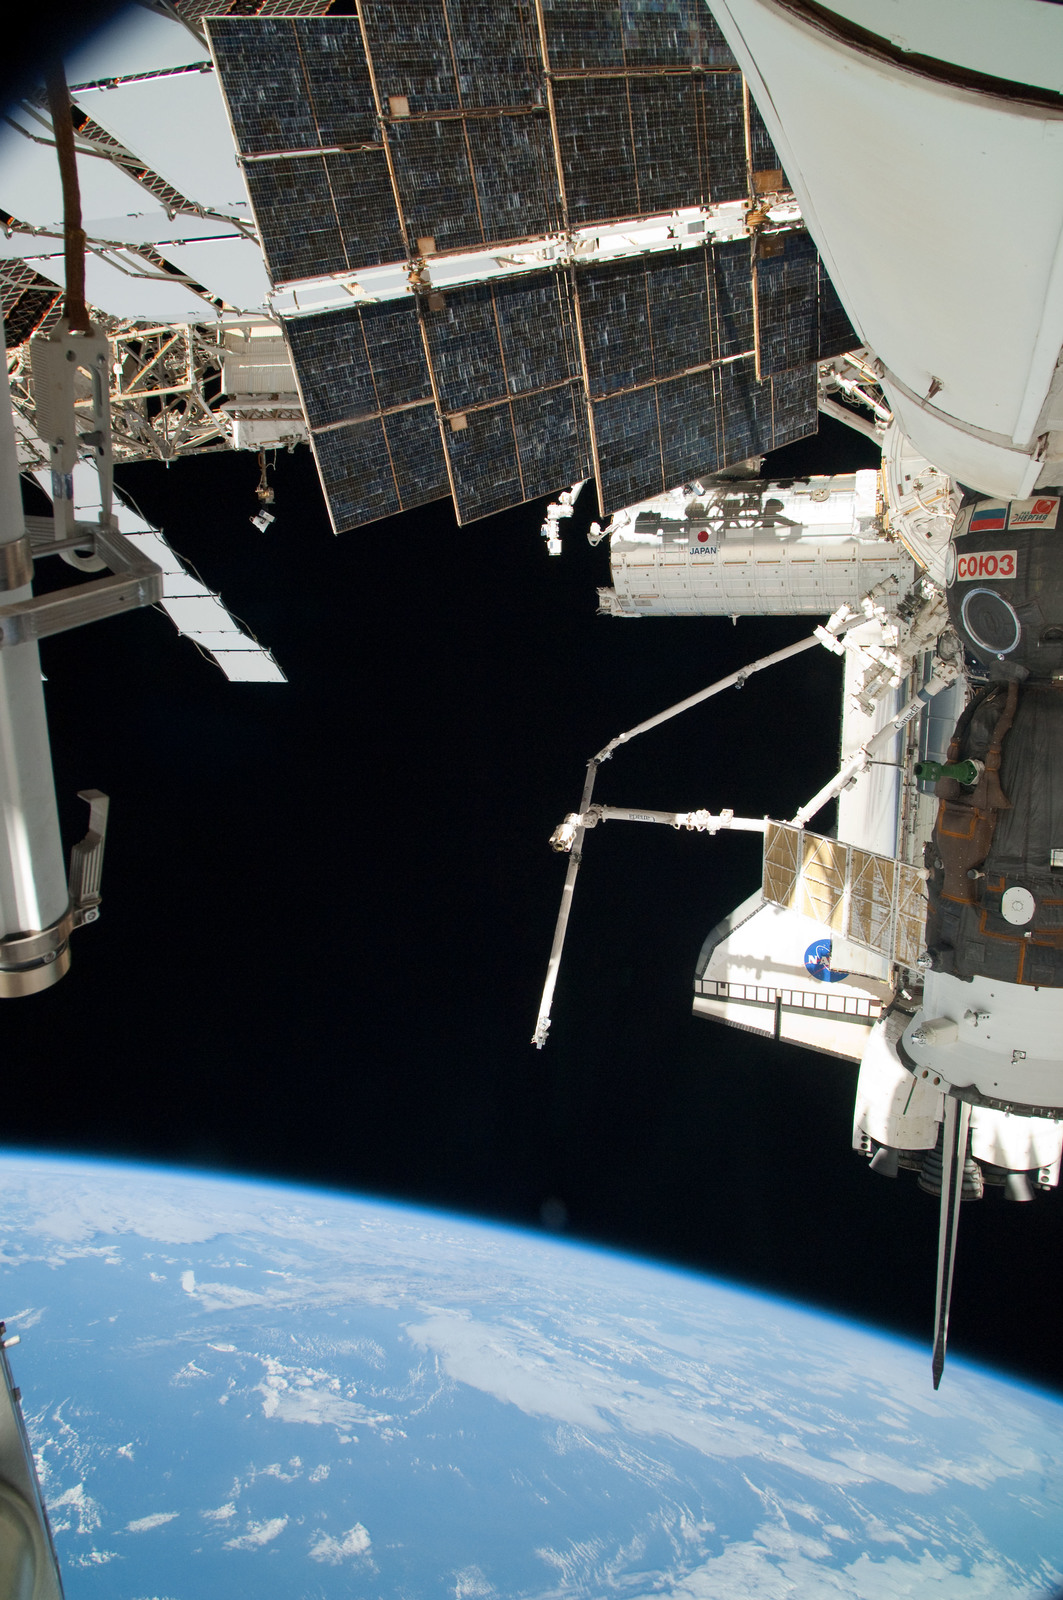 S126E025057 - STS-126 - View of ISS, Docked Soyuz and Endeavour